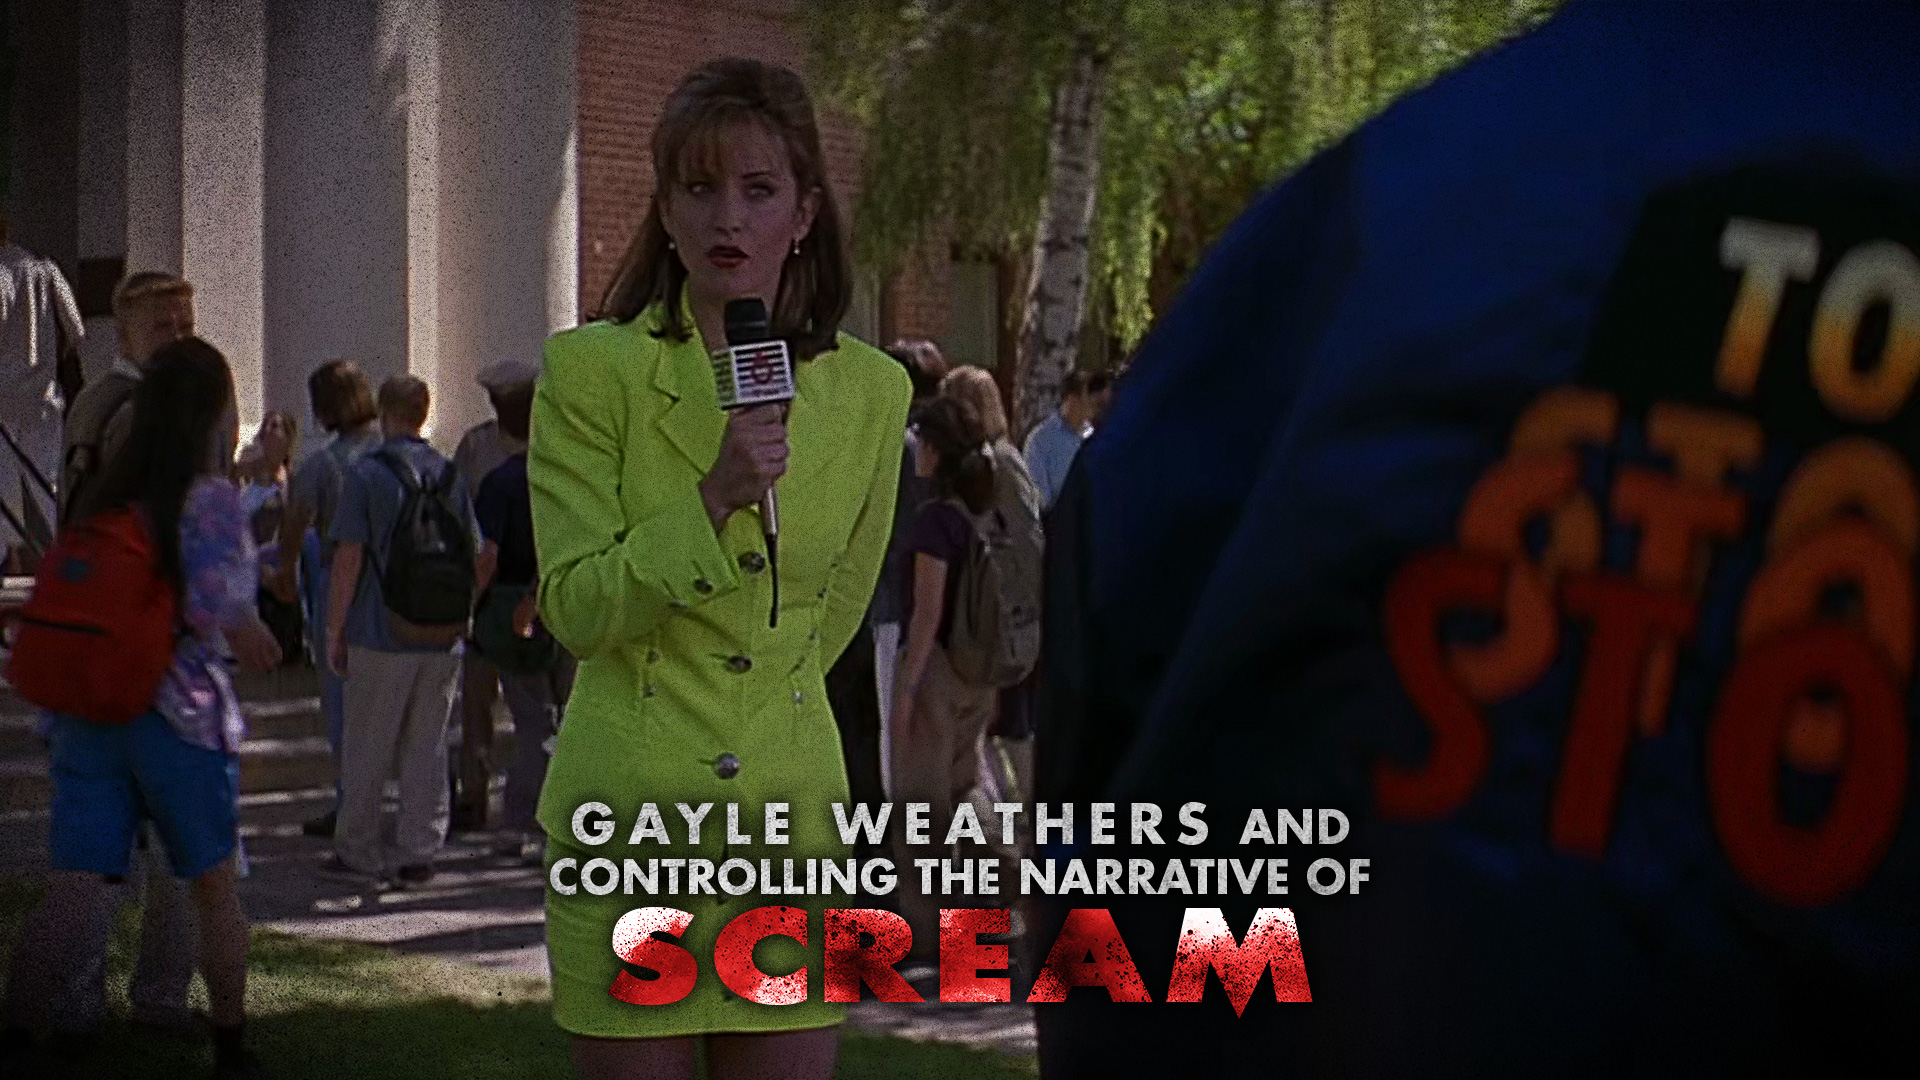 HORRORWOOD™ Presents... 'Gayle Weathers and Controlling the Narrative of 'Scream''